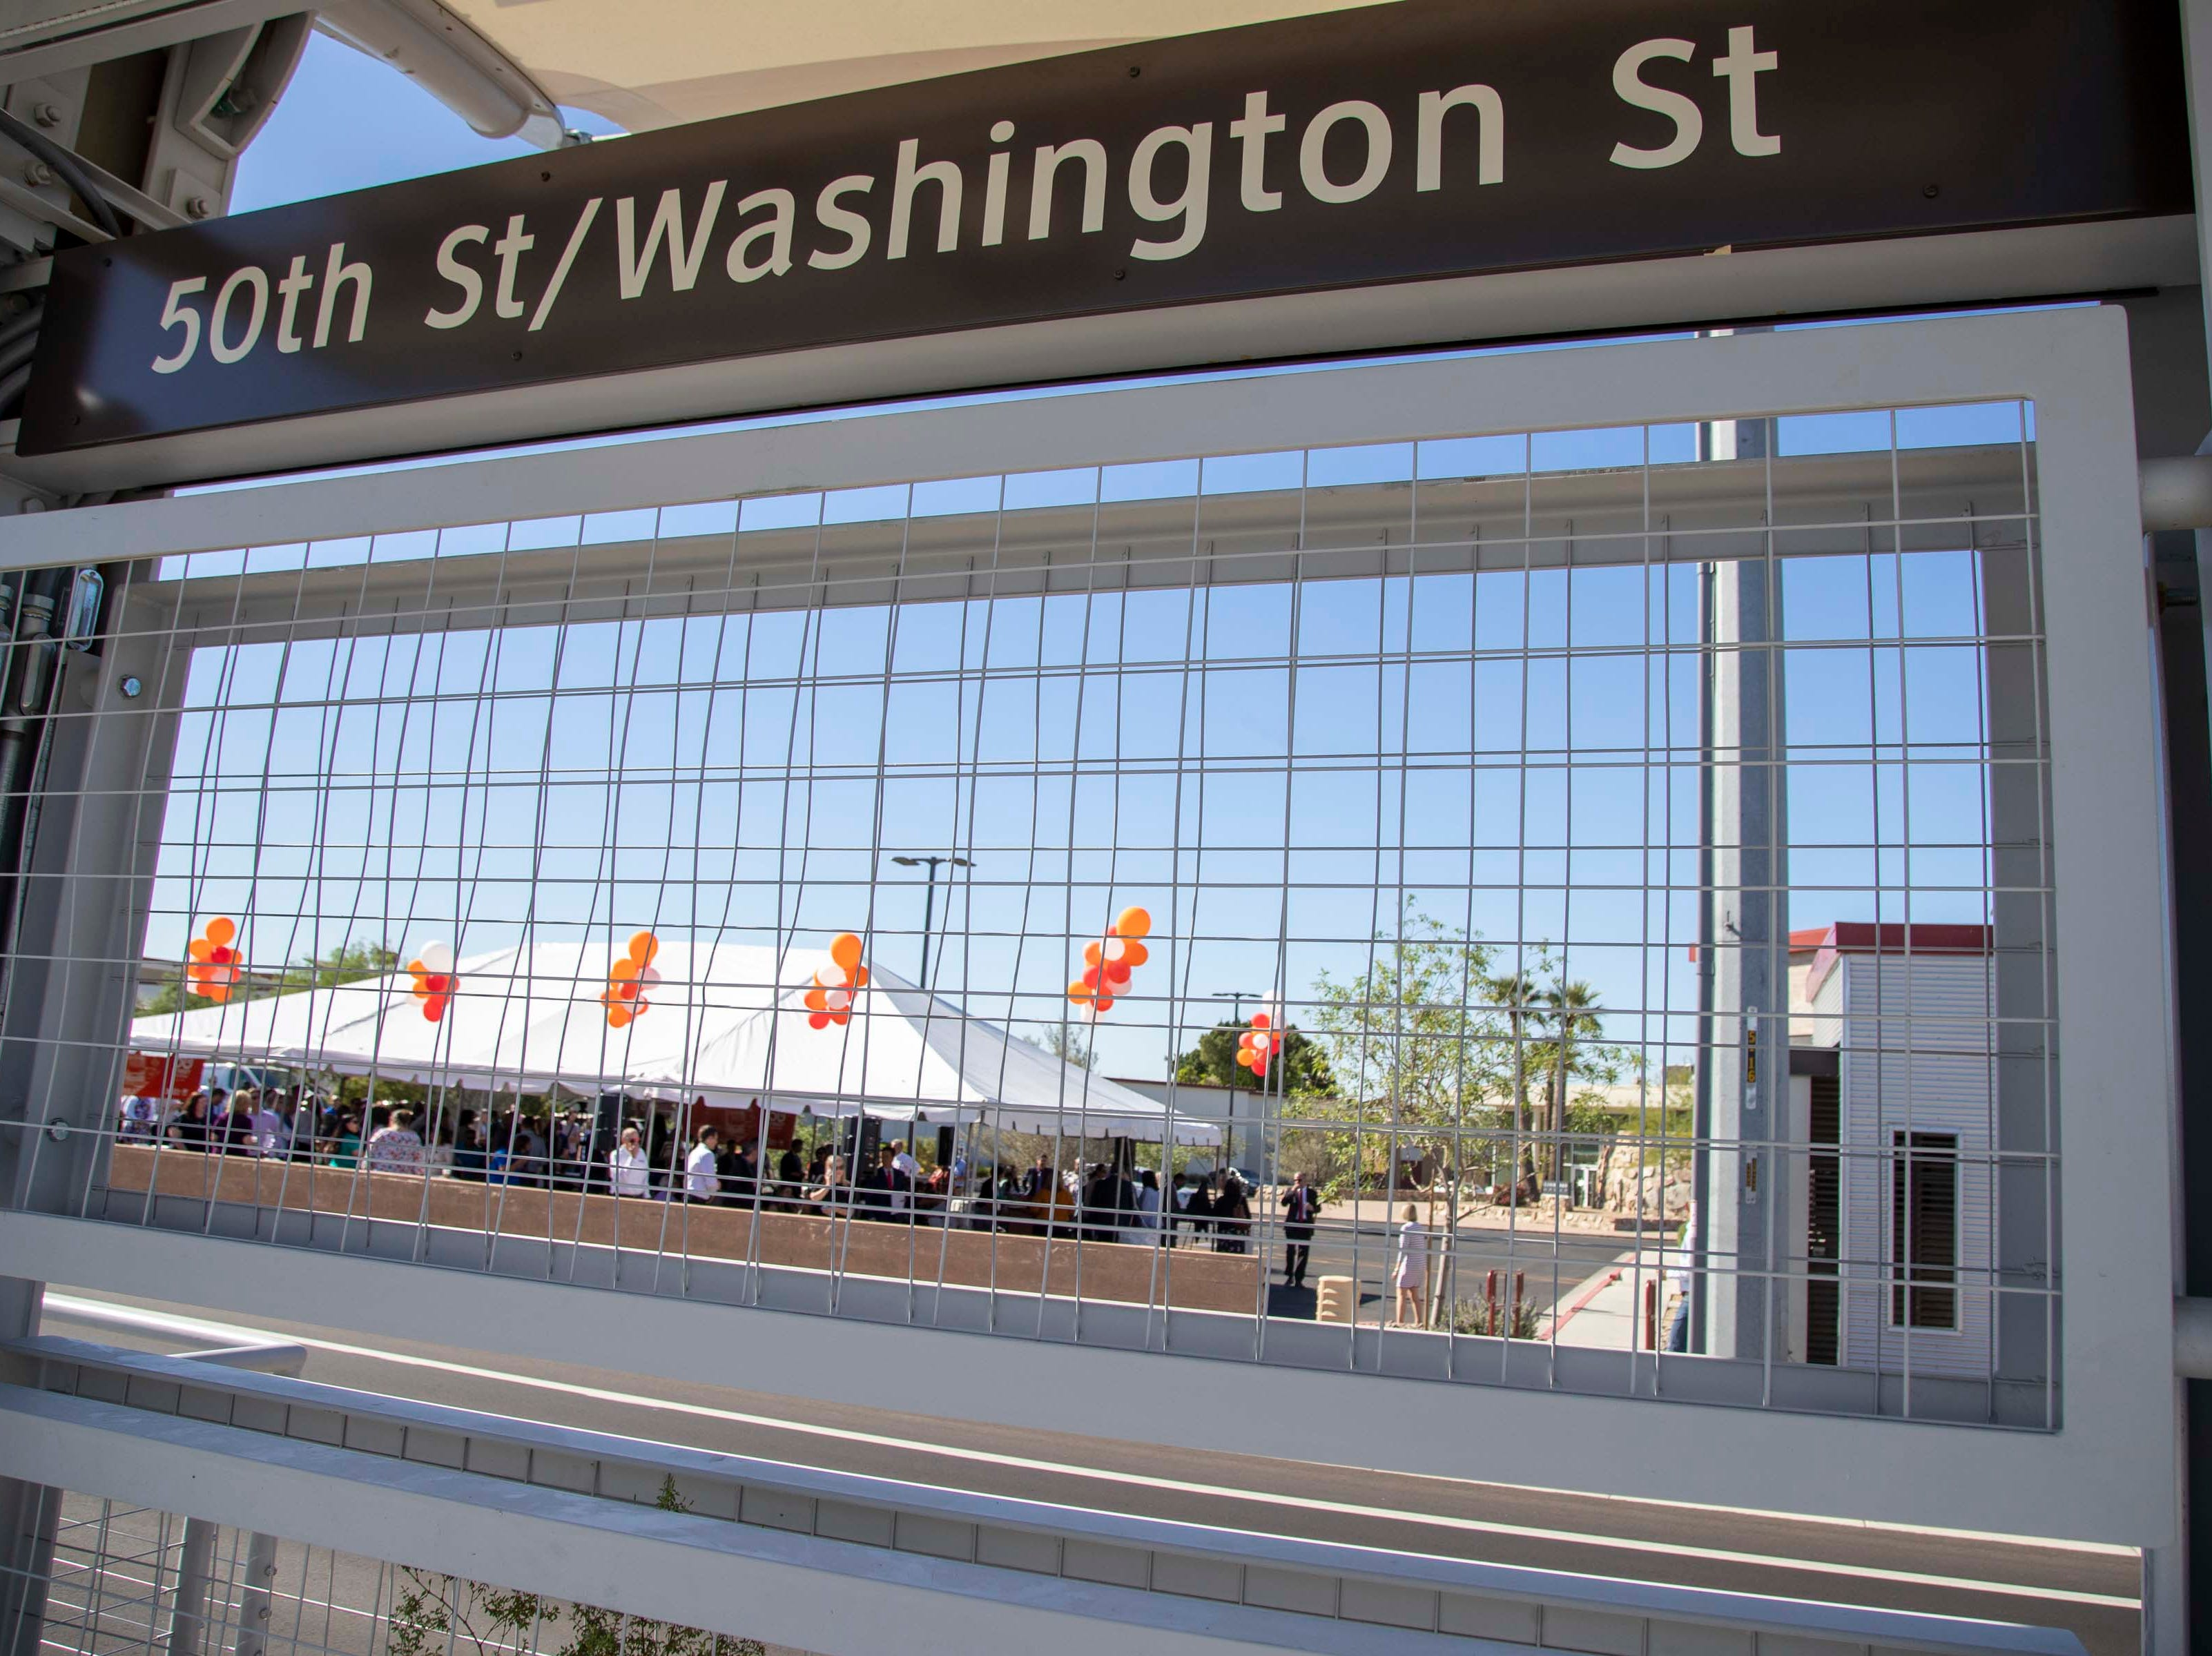 The new 50th Street and Washington light rail station, will provide additional access to Ability 360, one of Arizona's largest disability resource centers.